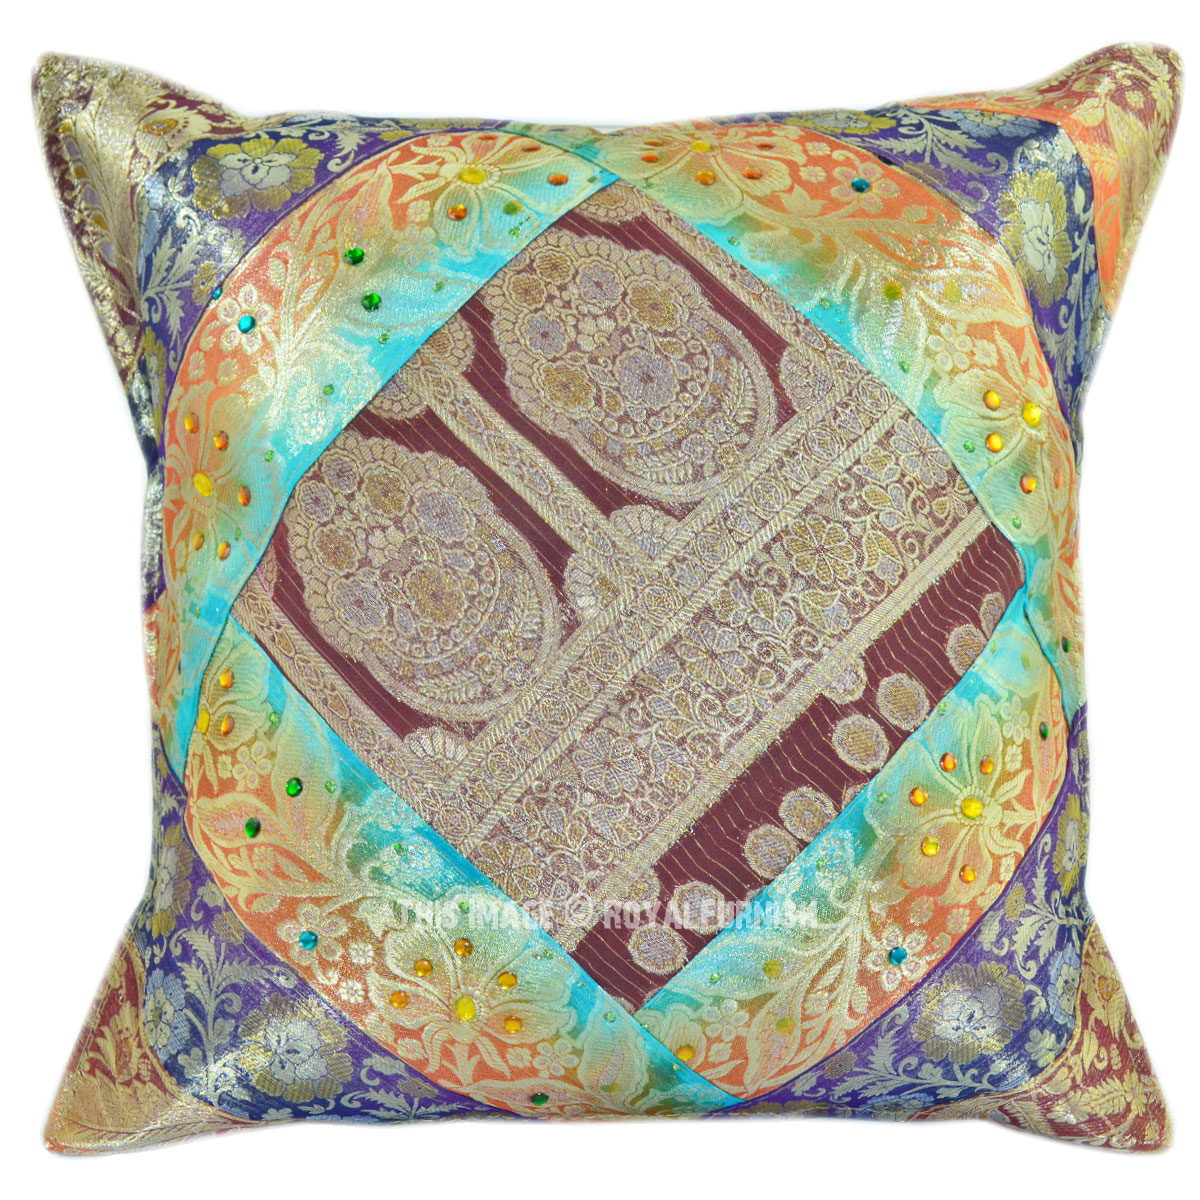 Sequin Elephant Throw Pillow : Multi Floral Sequin and Striped Unique One-of-a-kind Pillow Cover - RoyalFurnish.com